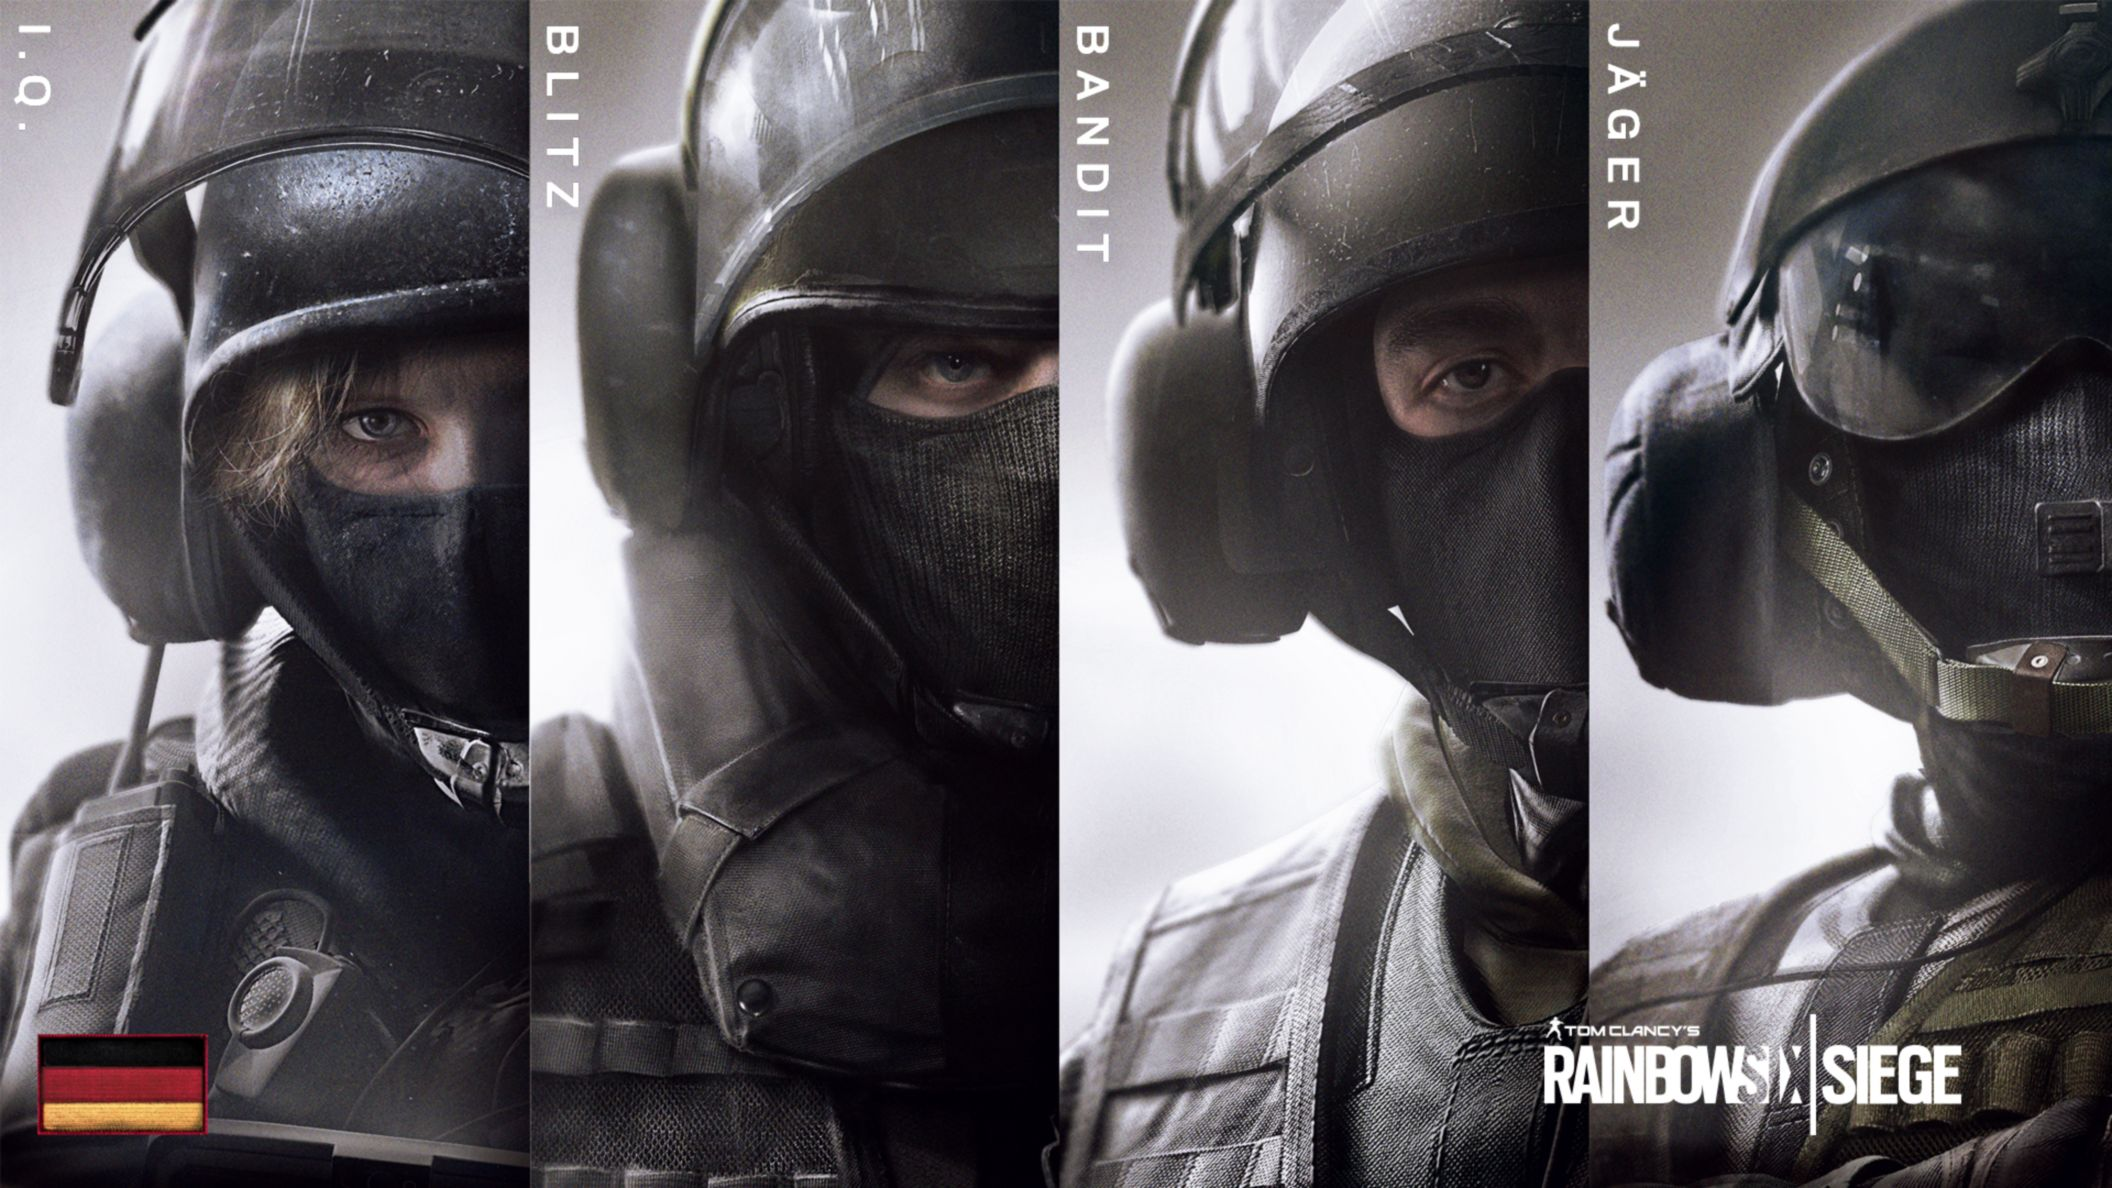 Download free HD Rainbow Six Siege Gsg9 HD Wallpaper, image